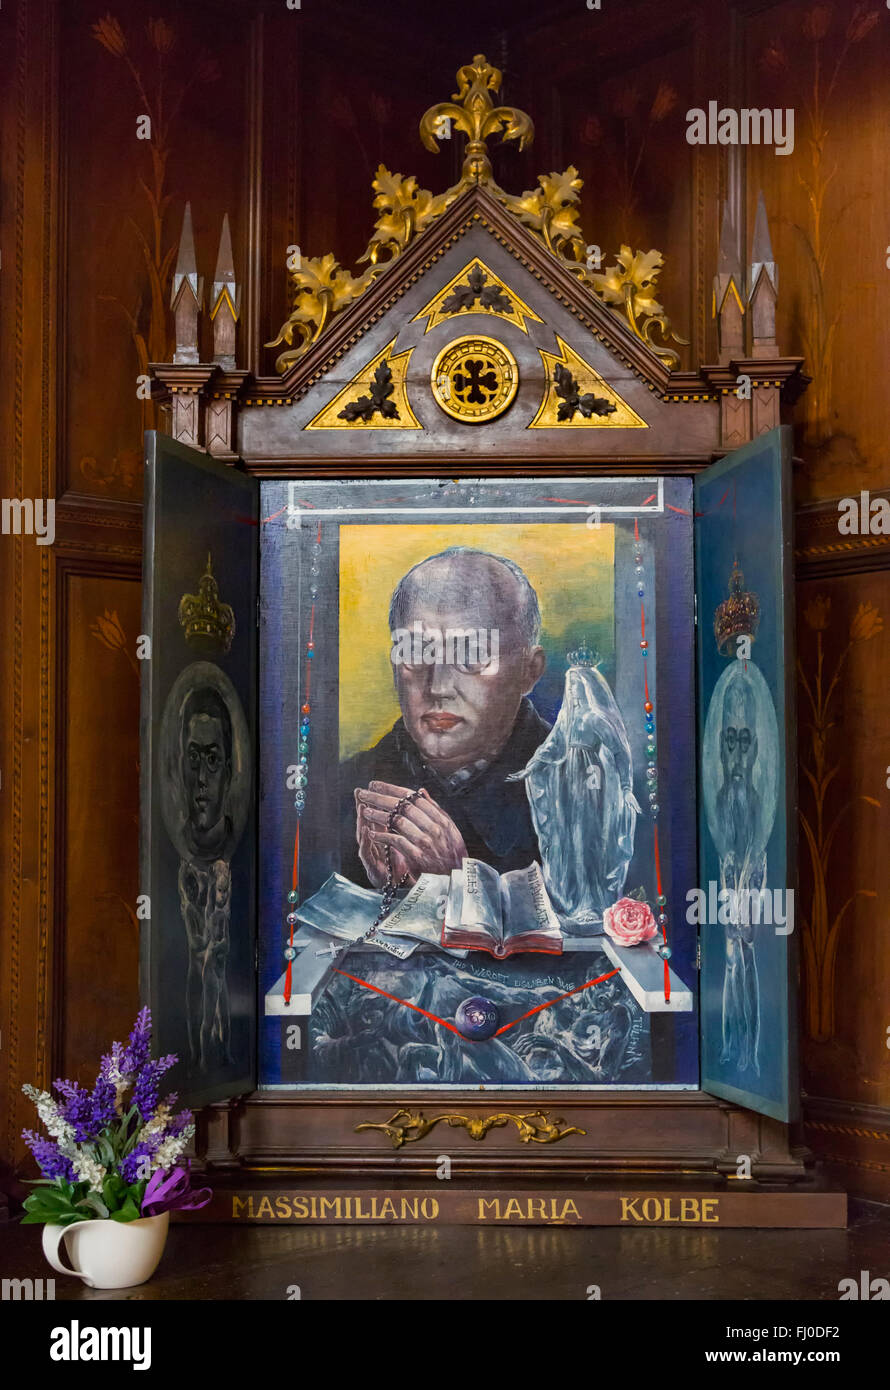 Triptych of Maximilian Maria Kolbe, 1894-1941, Polish priest who volunteered to be starved to death in place of - Stock Image